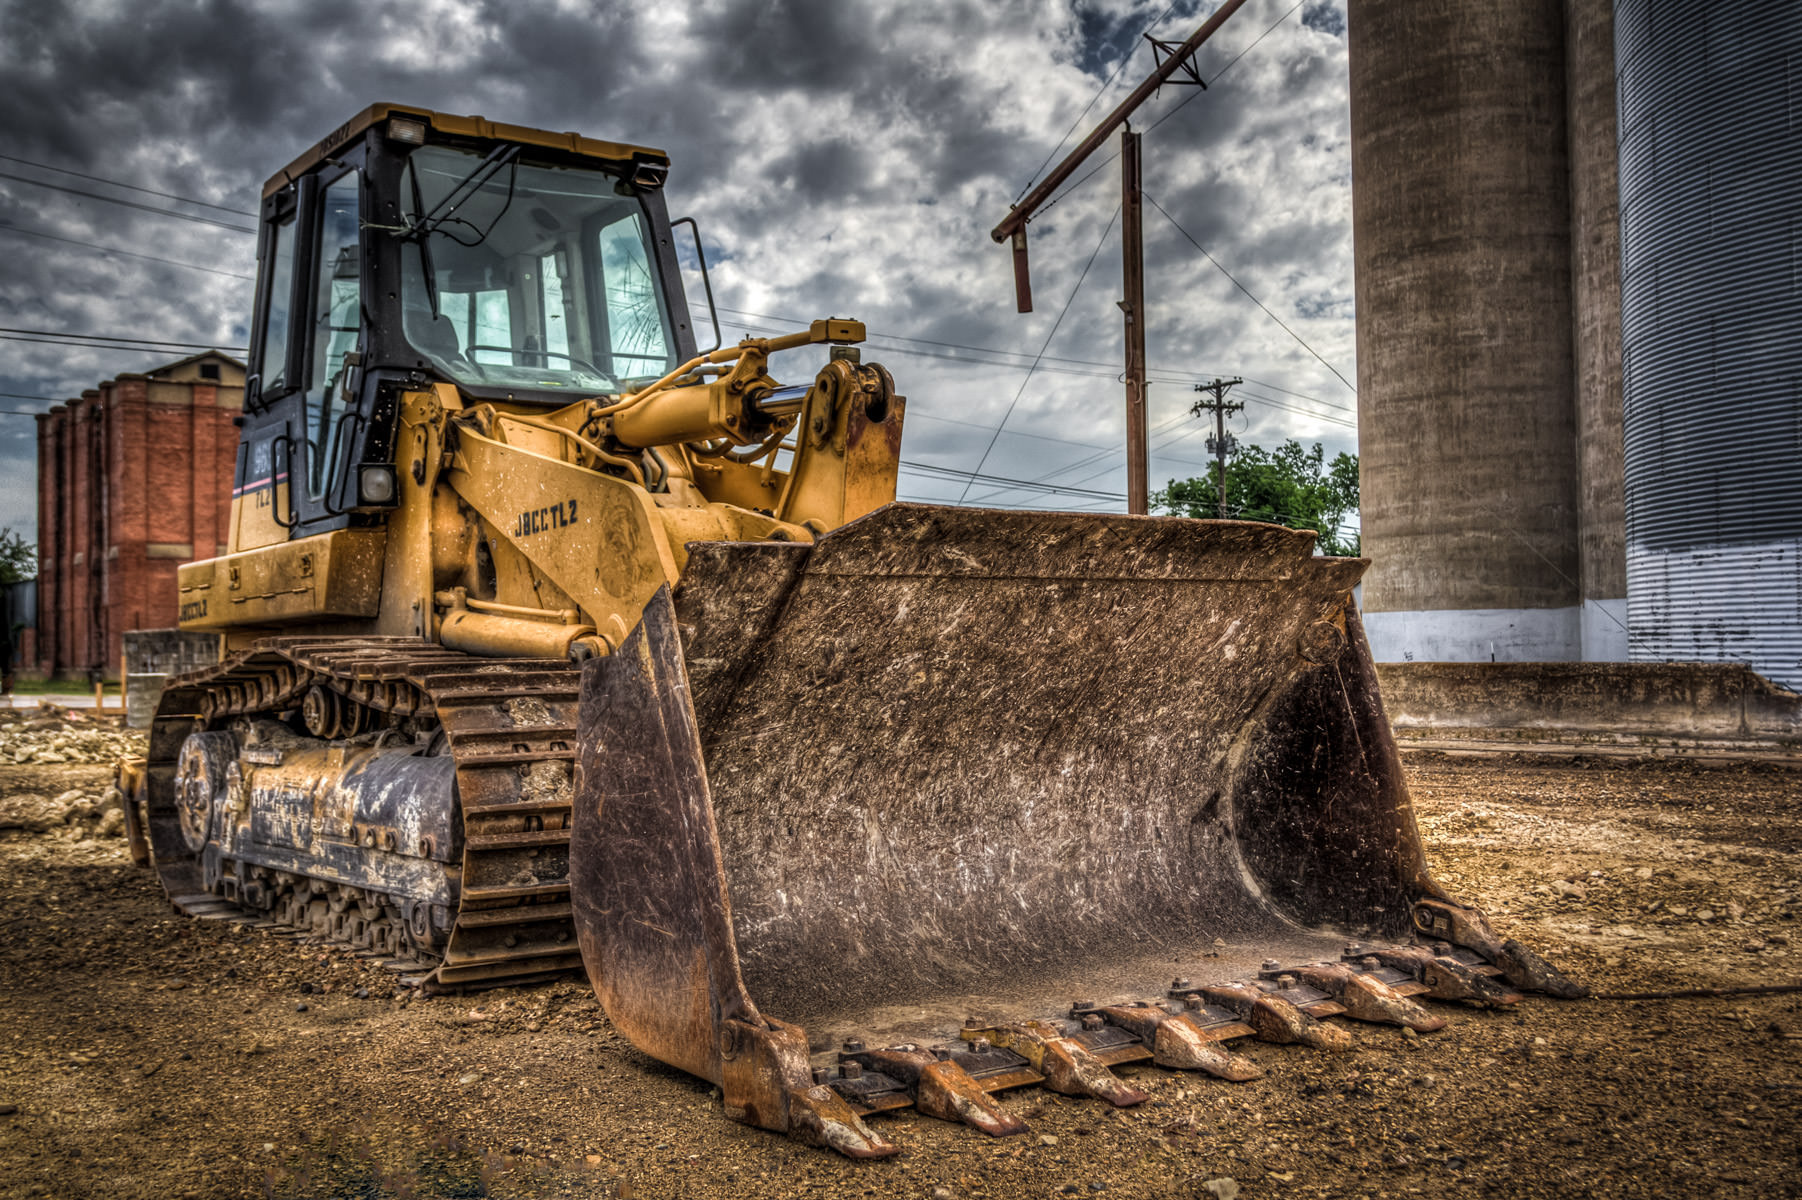 A front-end loader found at a McKinney, Texas construction site.